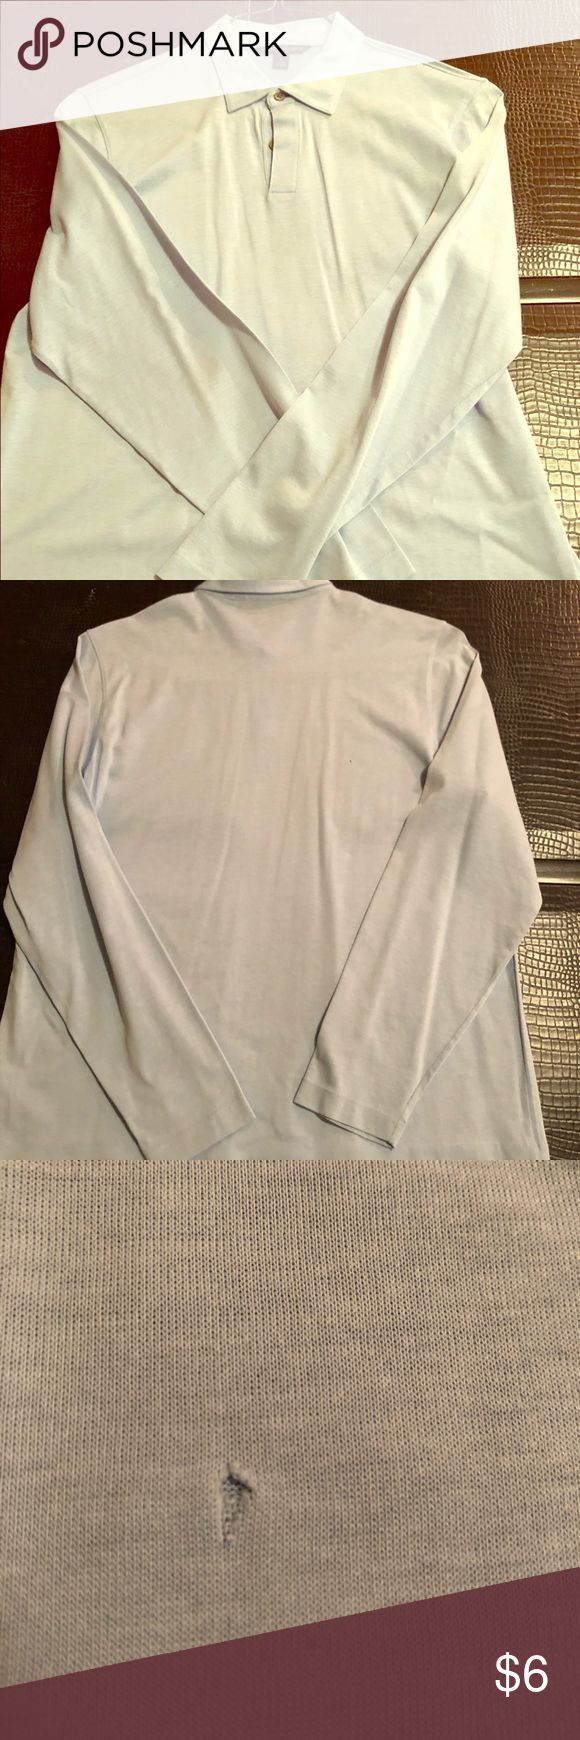 Men's Banana Republic long-sleeved polo Light blue, size large, long sleeve polo shirt. There are two tiny imperfections on the back of the shirt, I have included in pics. Banana Republic Shirts Polos